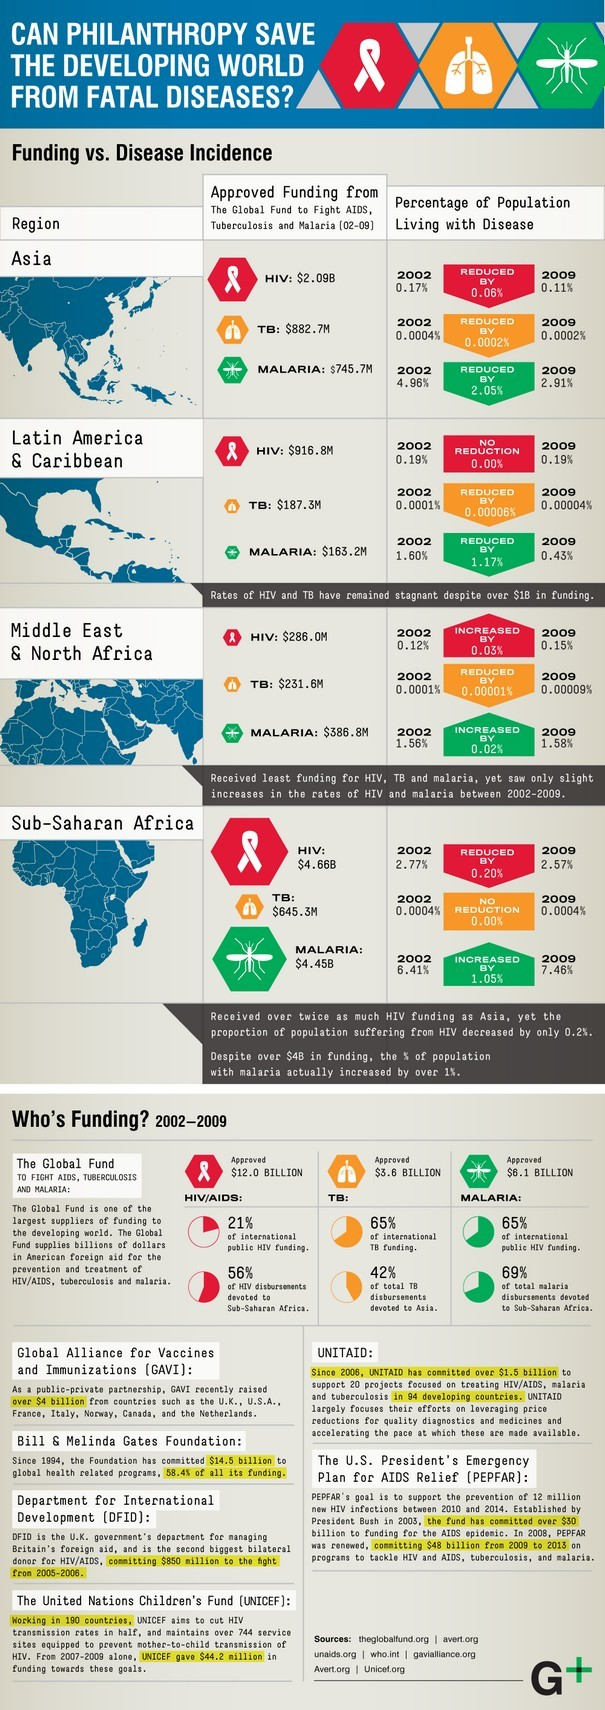 INFOGRAPHIC Can Philanthropy Save the Developing World from Fatal Diseases